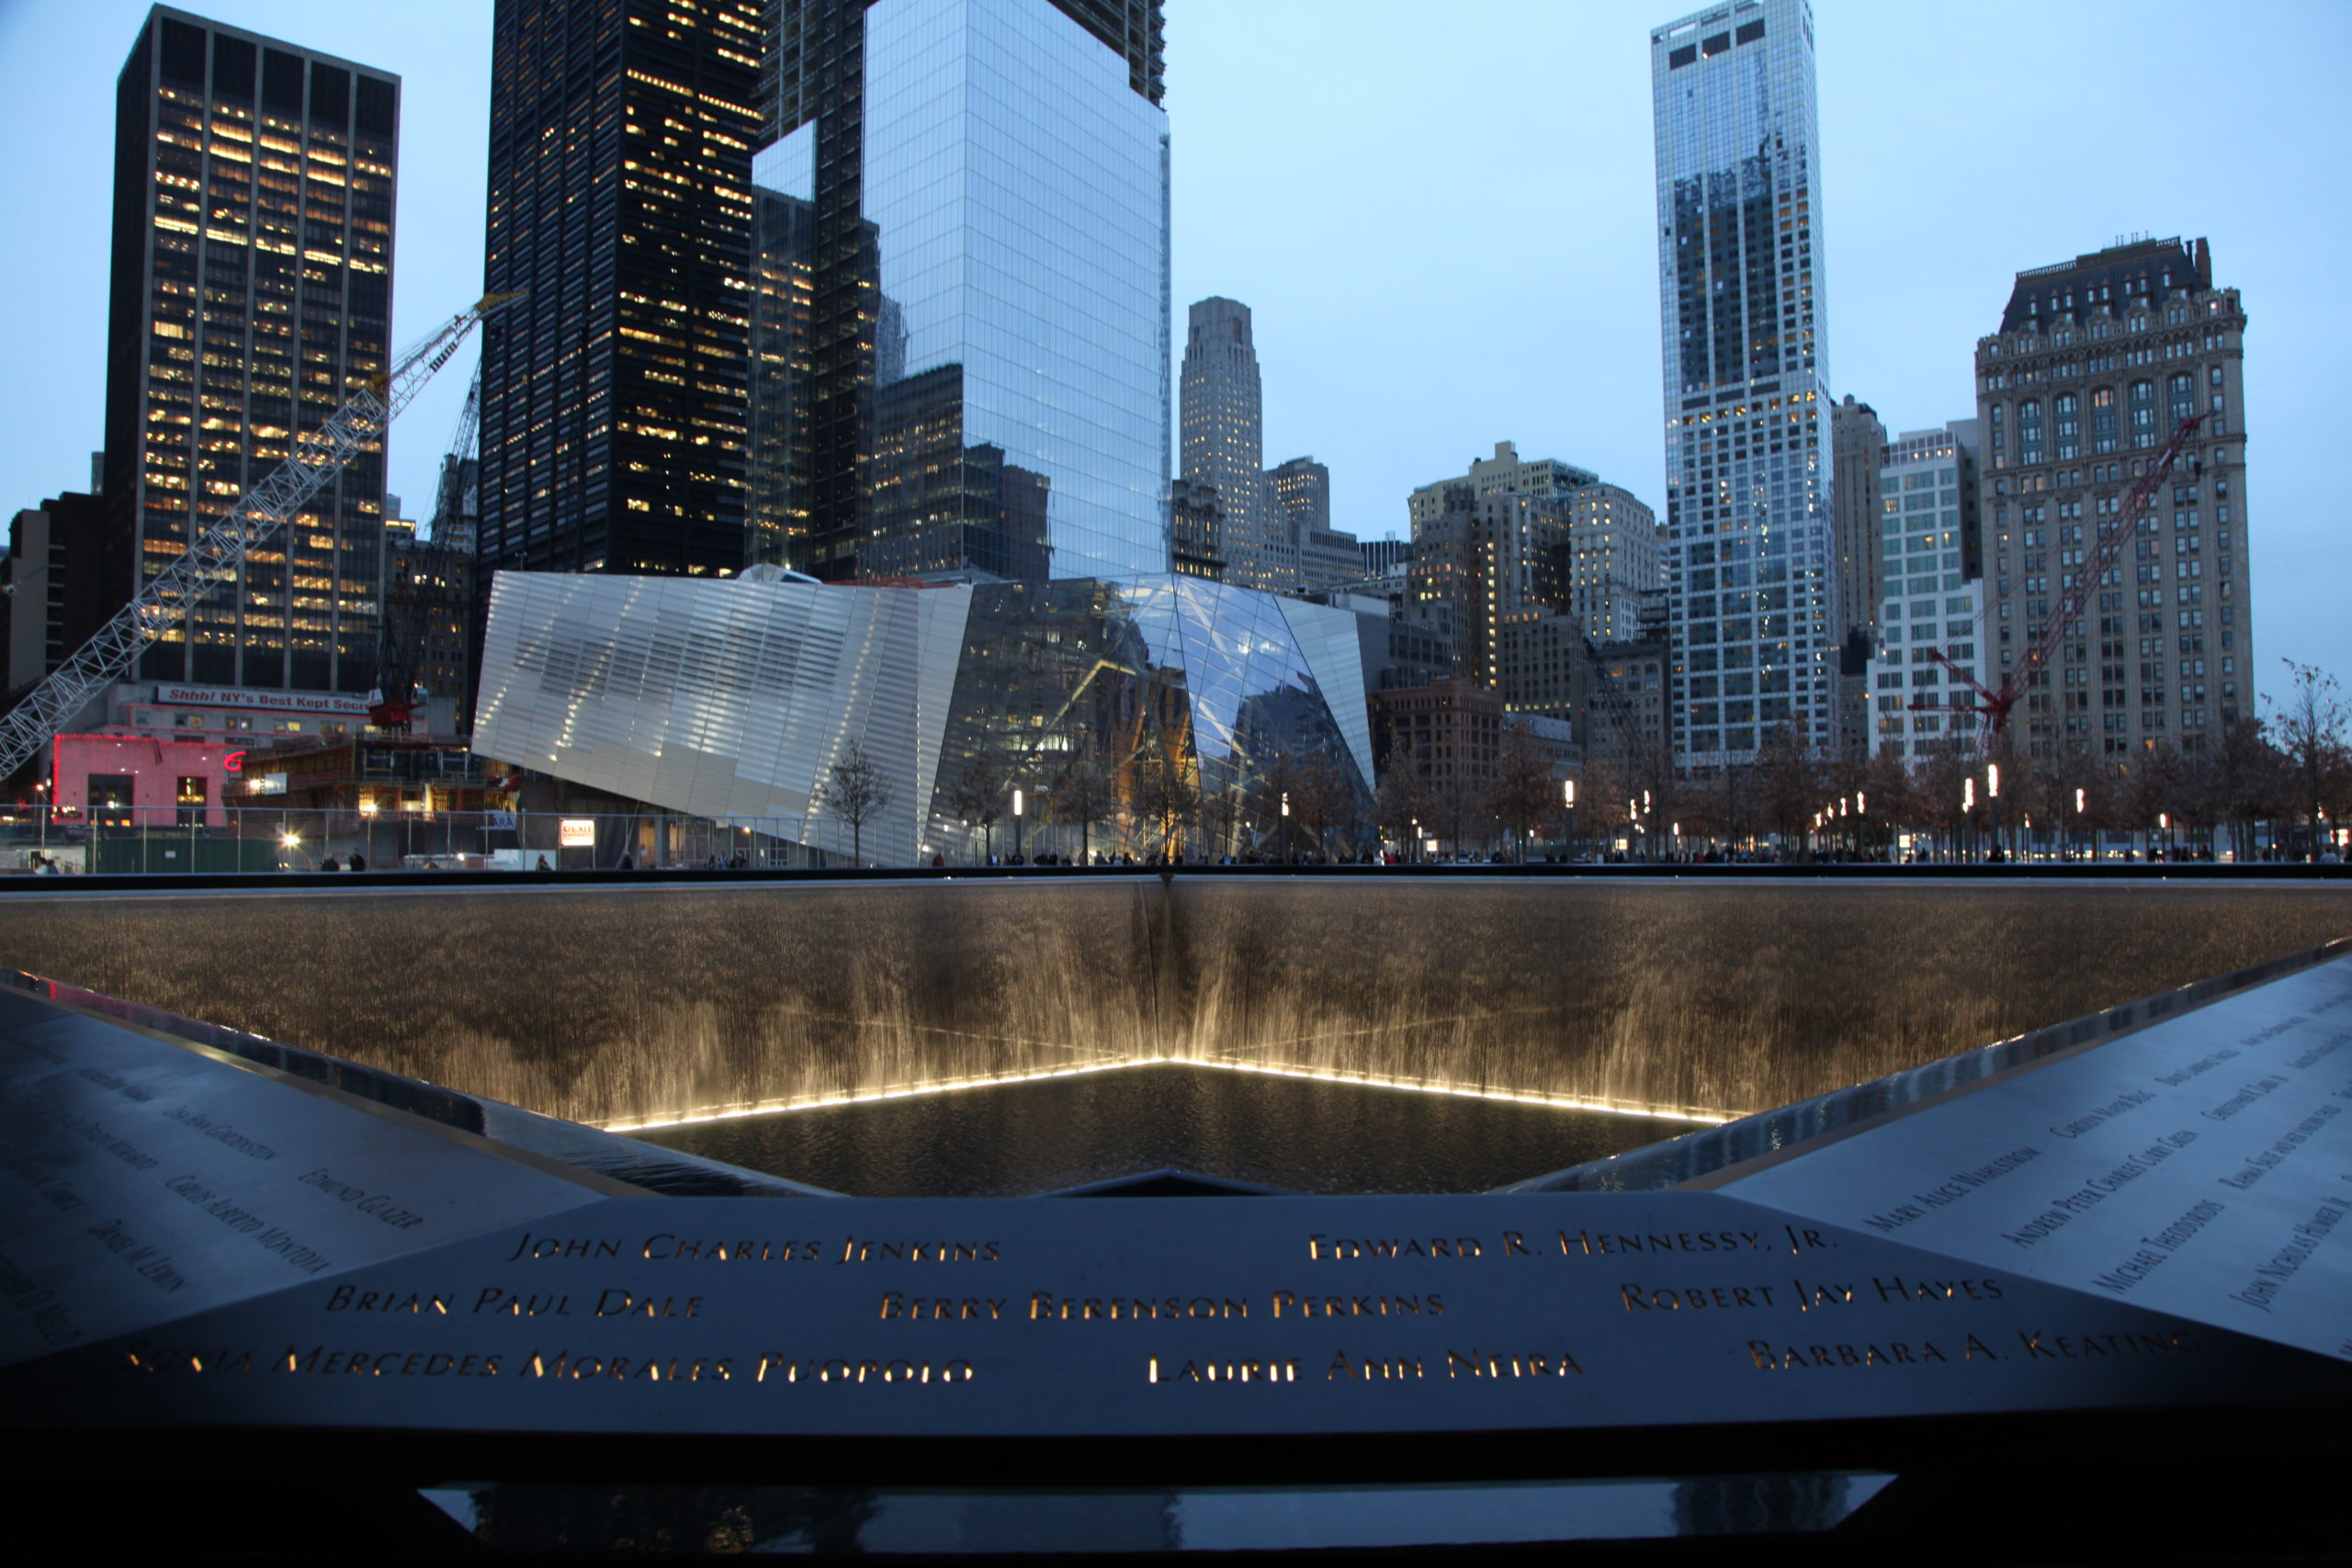 exterior of the 9/11 Memorial and Museum